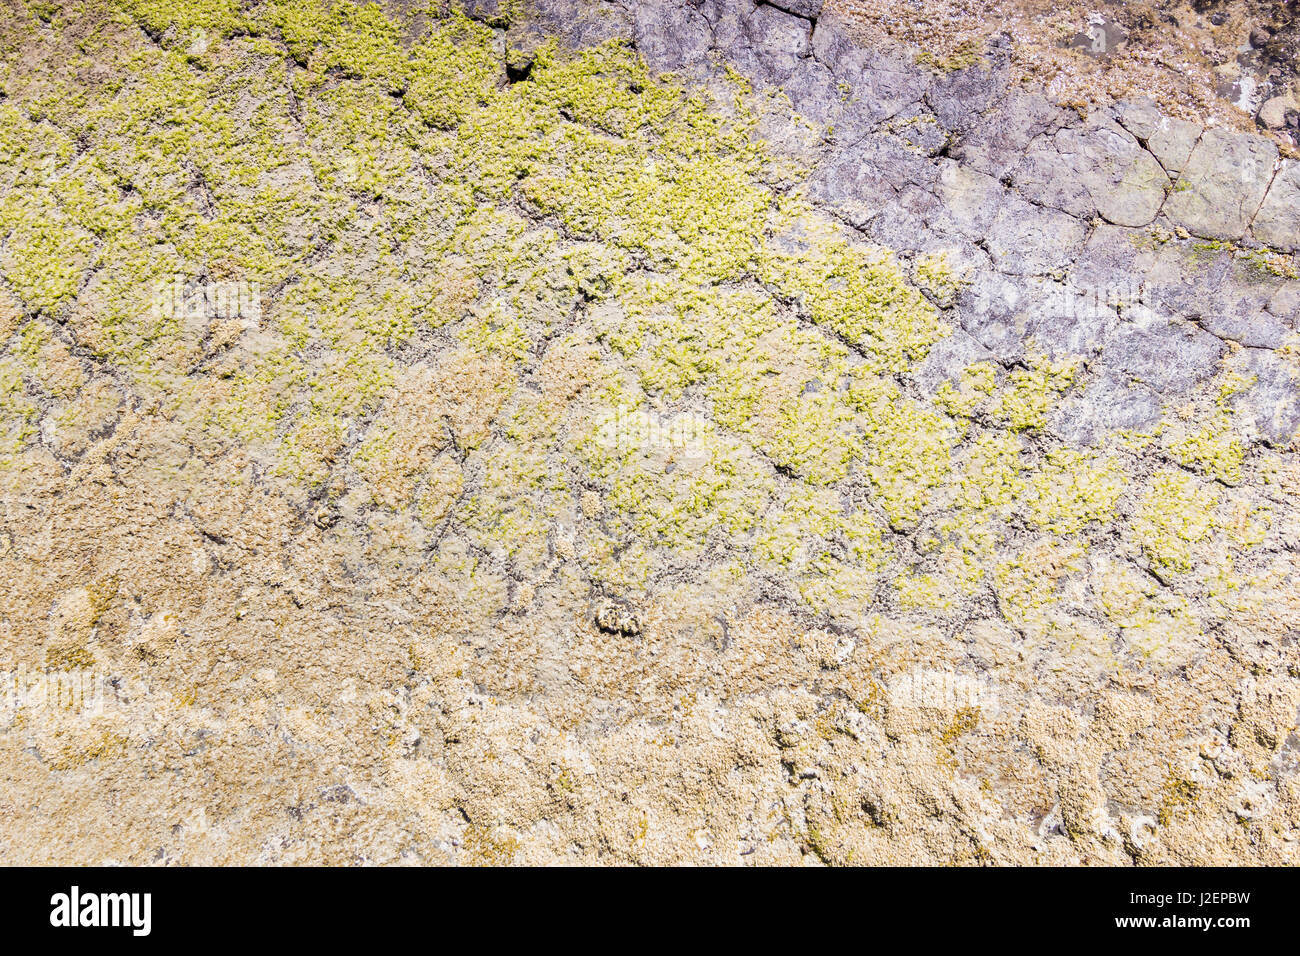 Natural stone texture, moss covered. Stock Photo